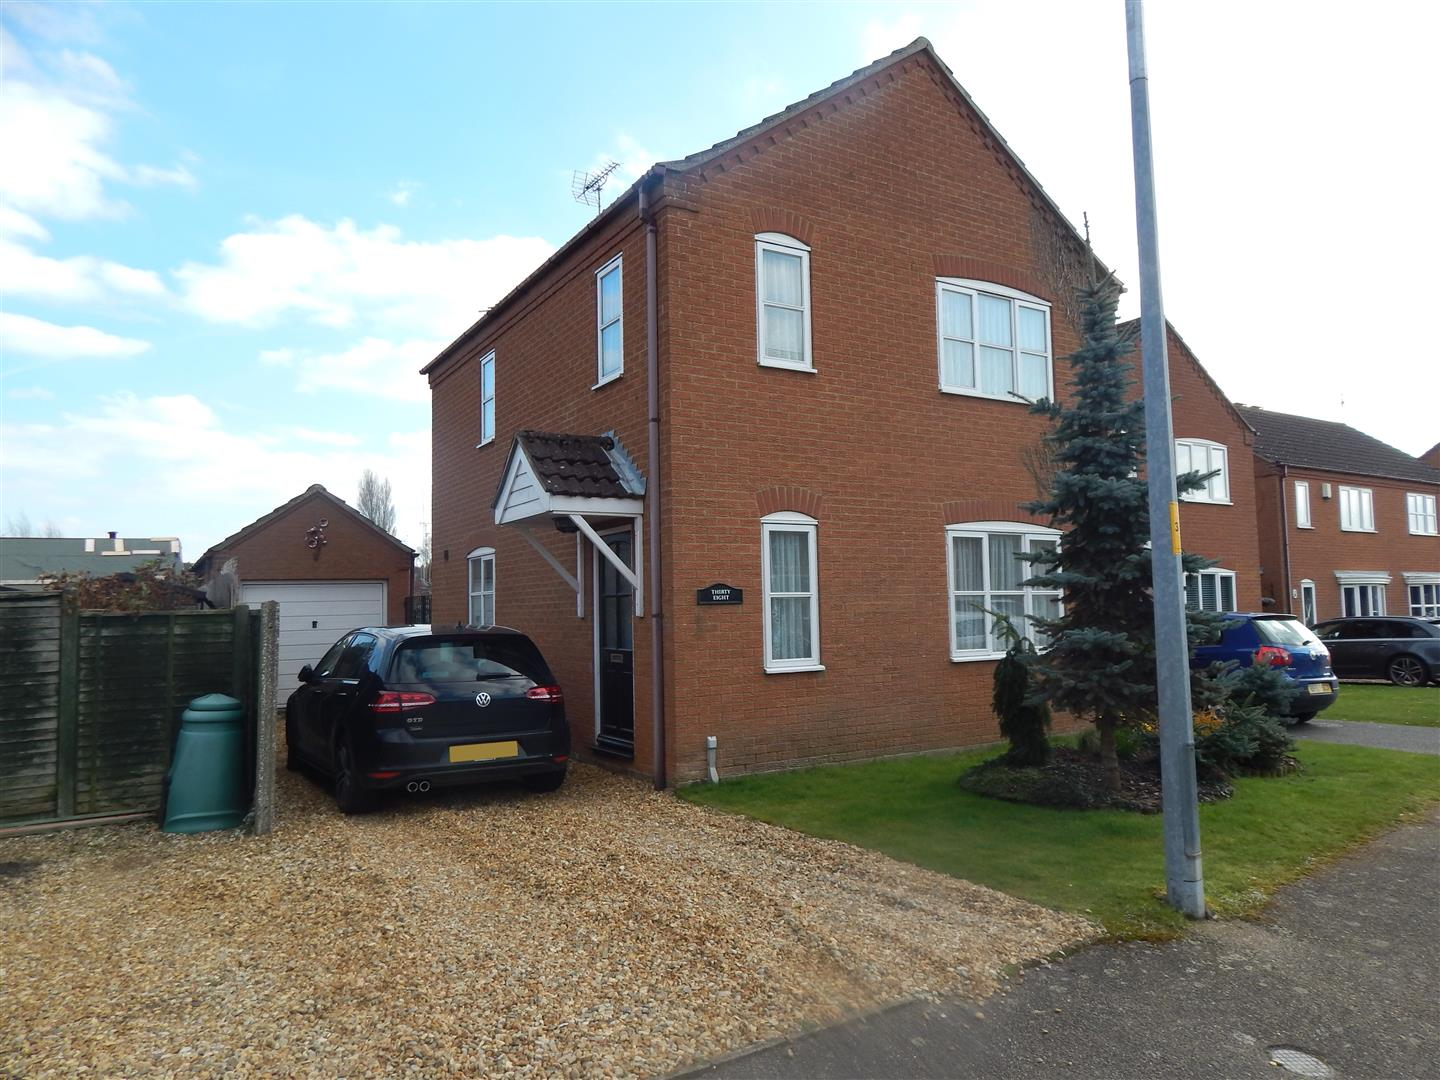 3 bed detached house for sale in Wallace Twite Way, King's Lynn  - Property Image 1